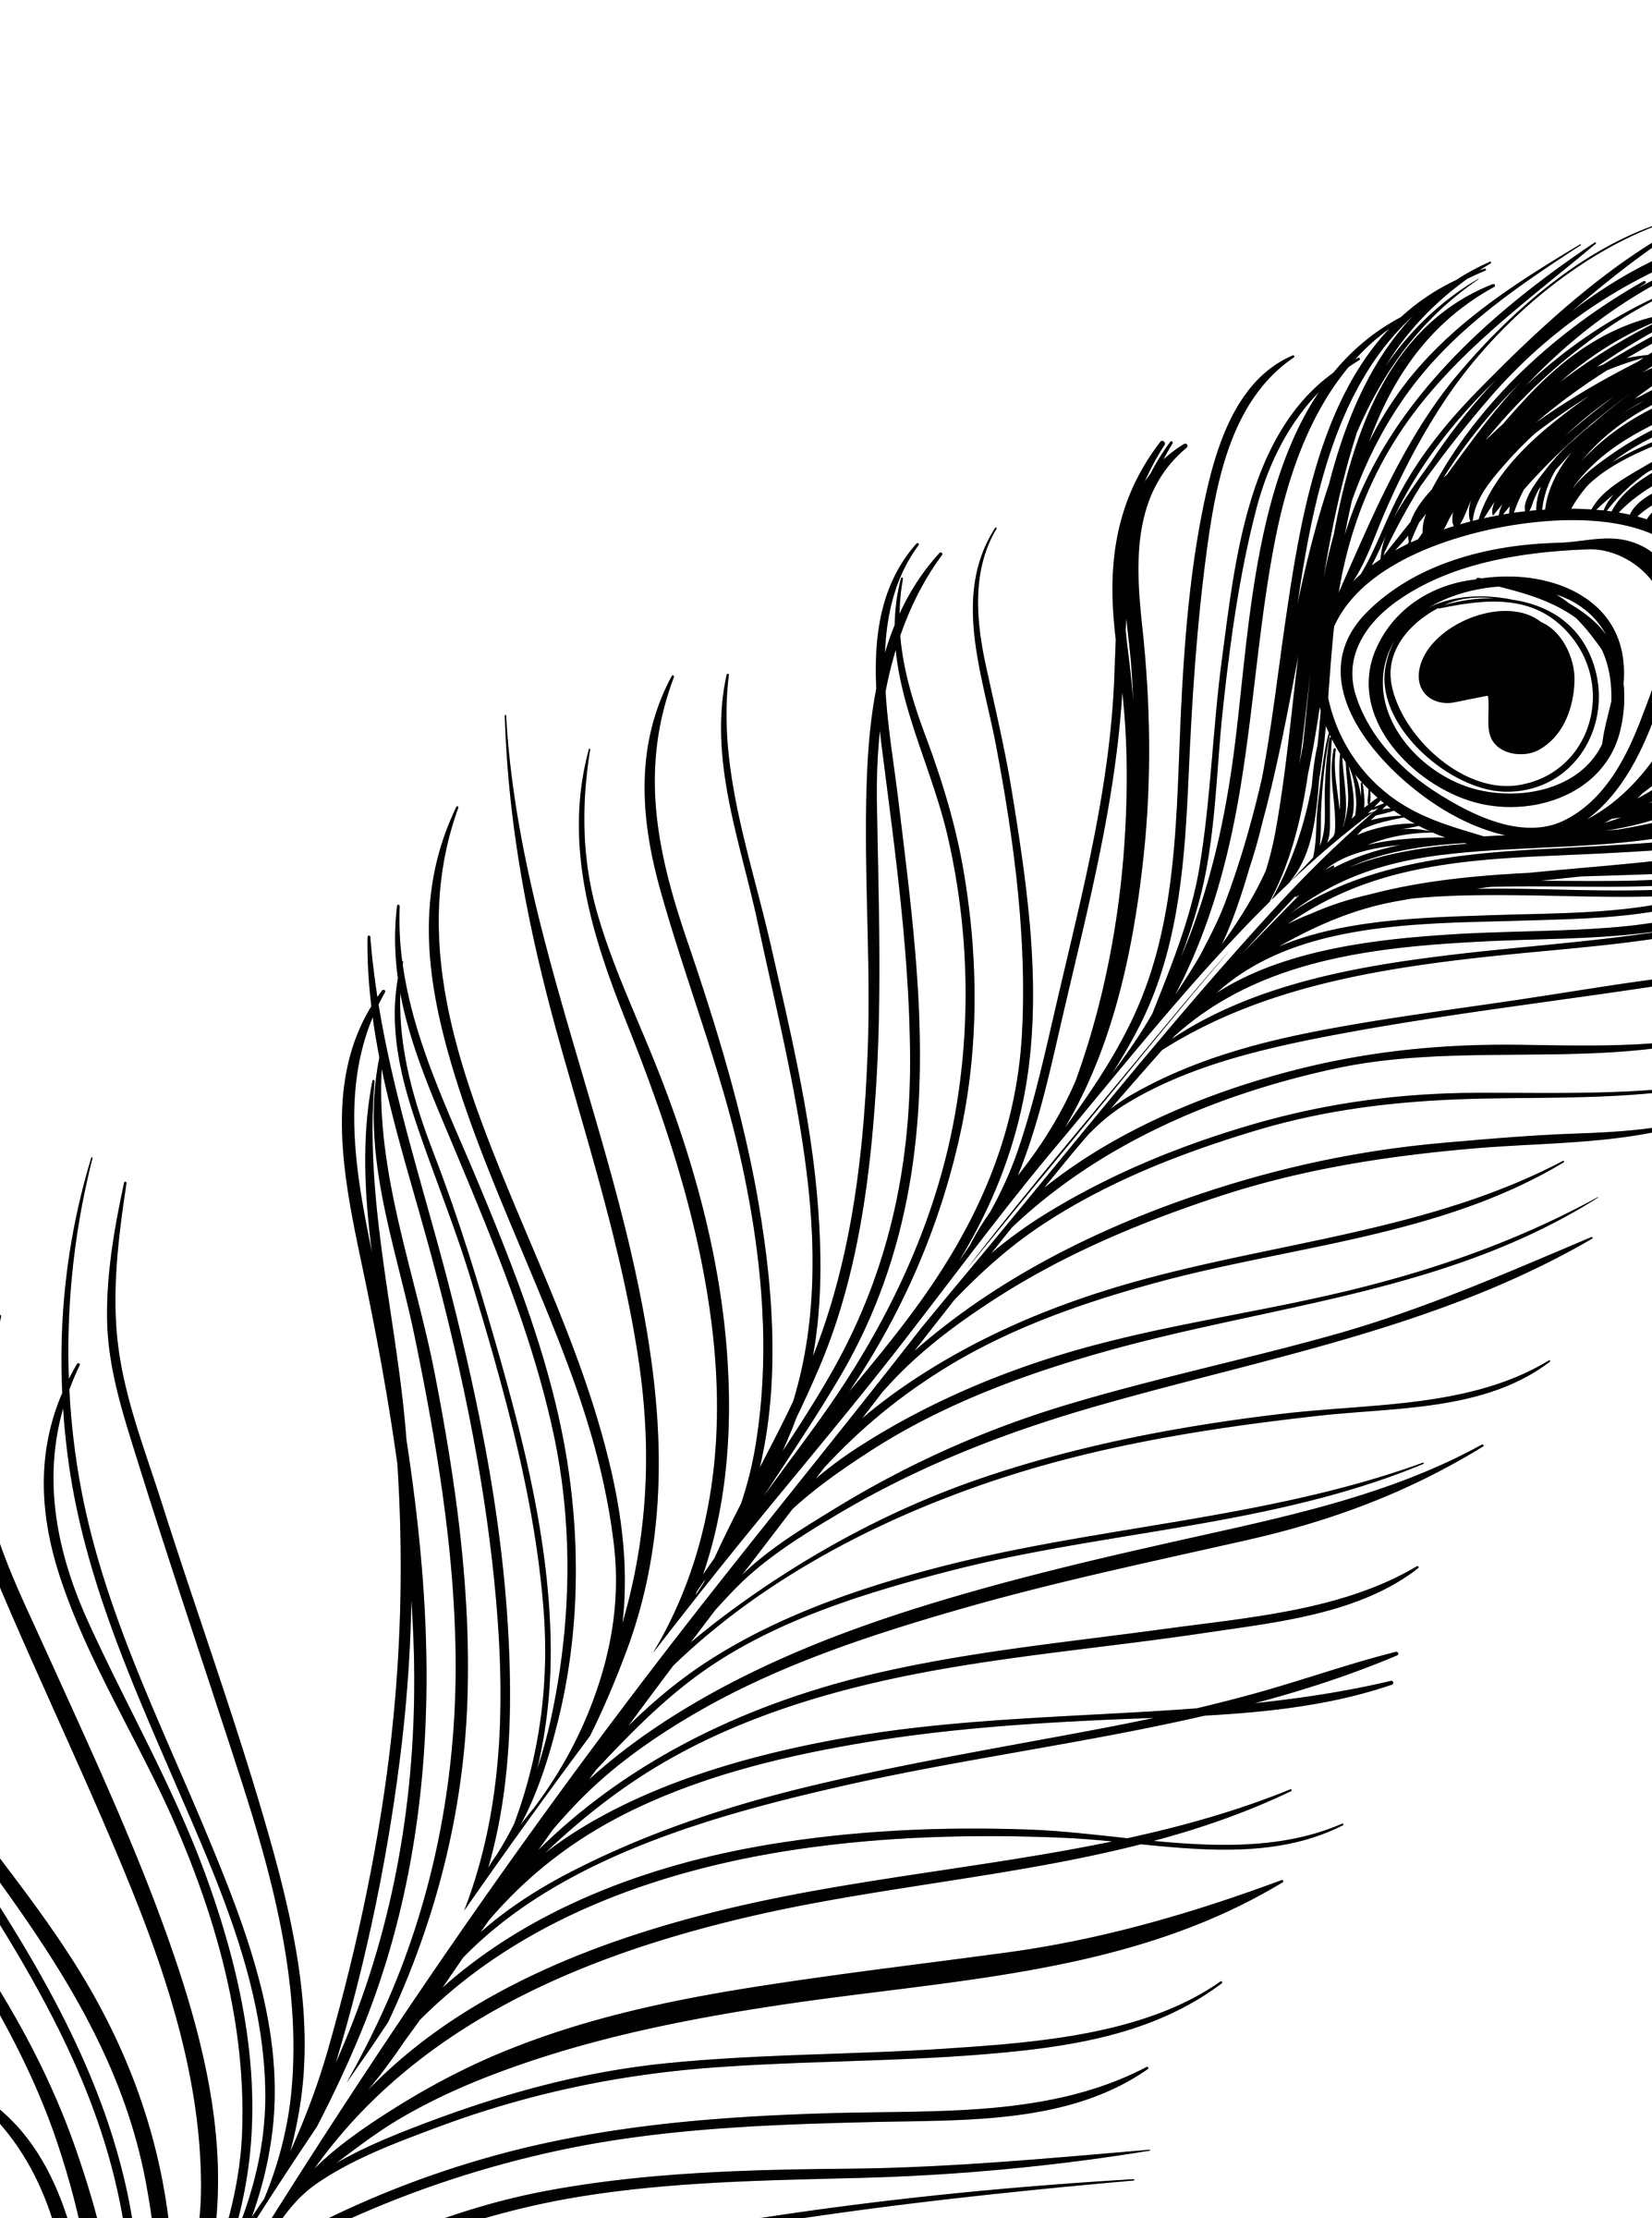 Line Art Feather : Feather line drawing birds album art pinterest